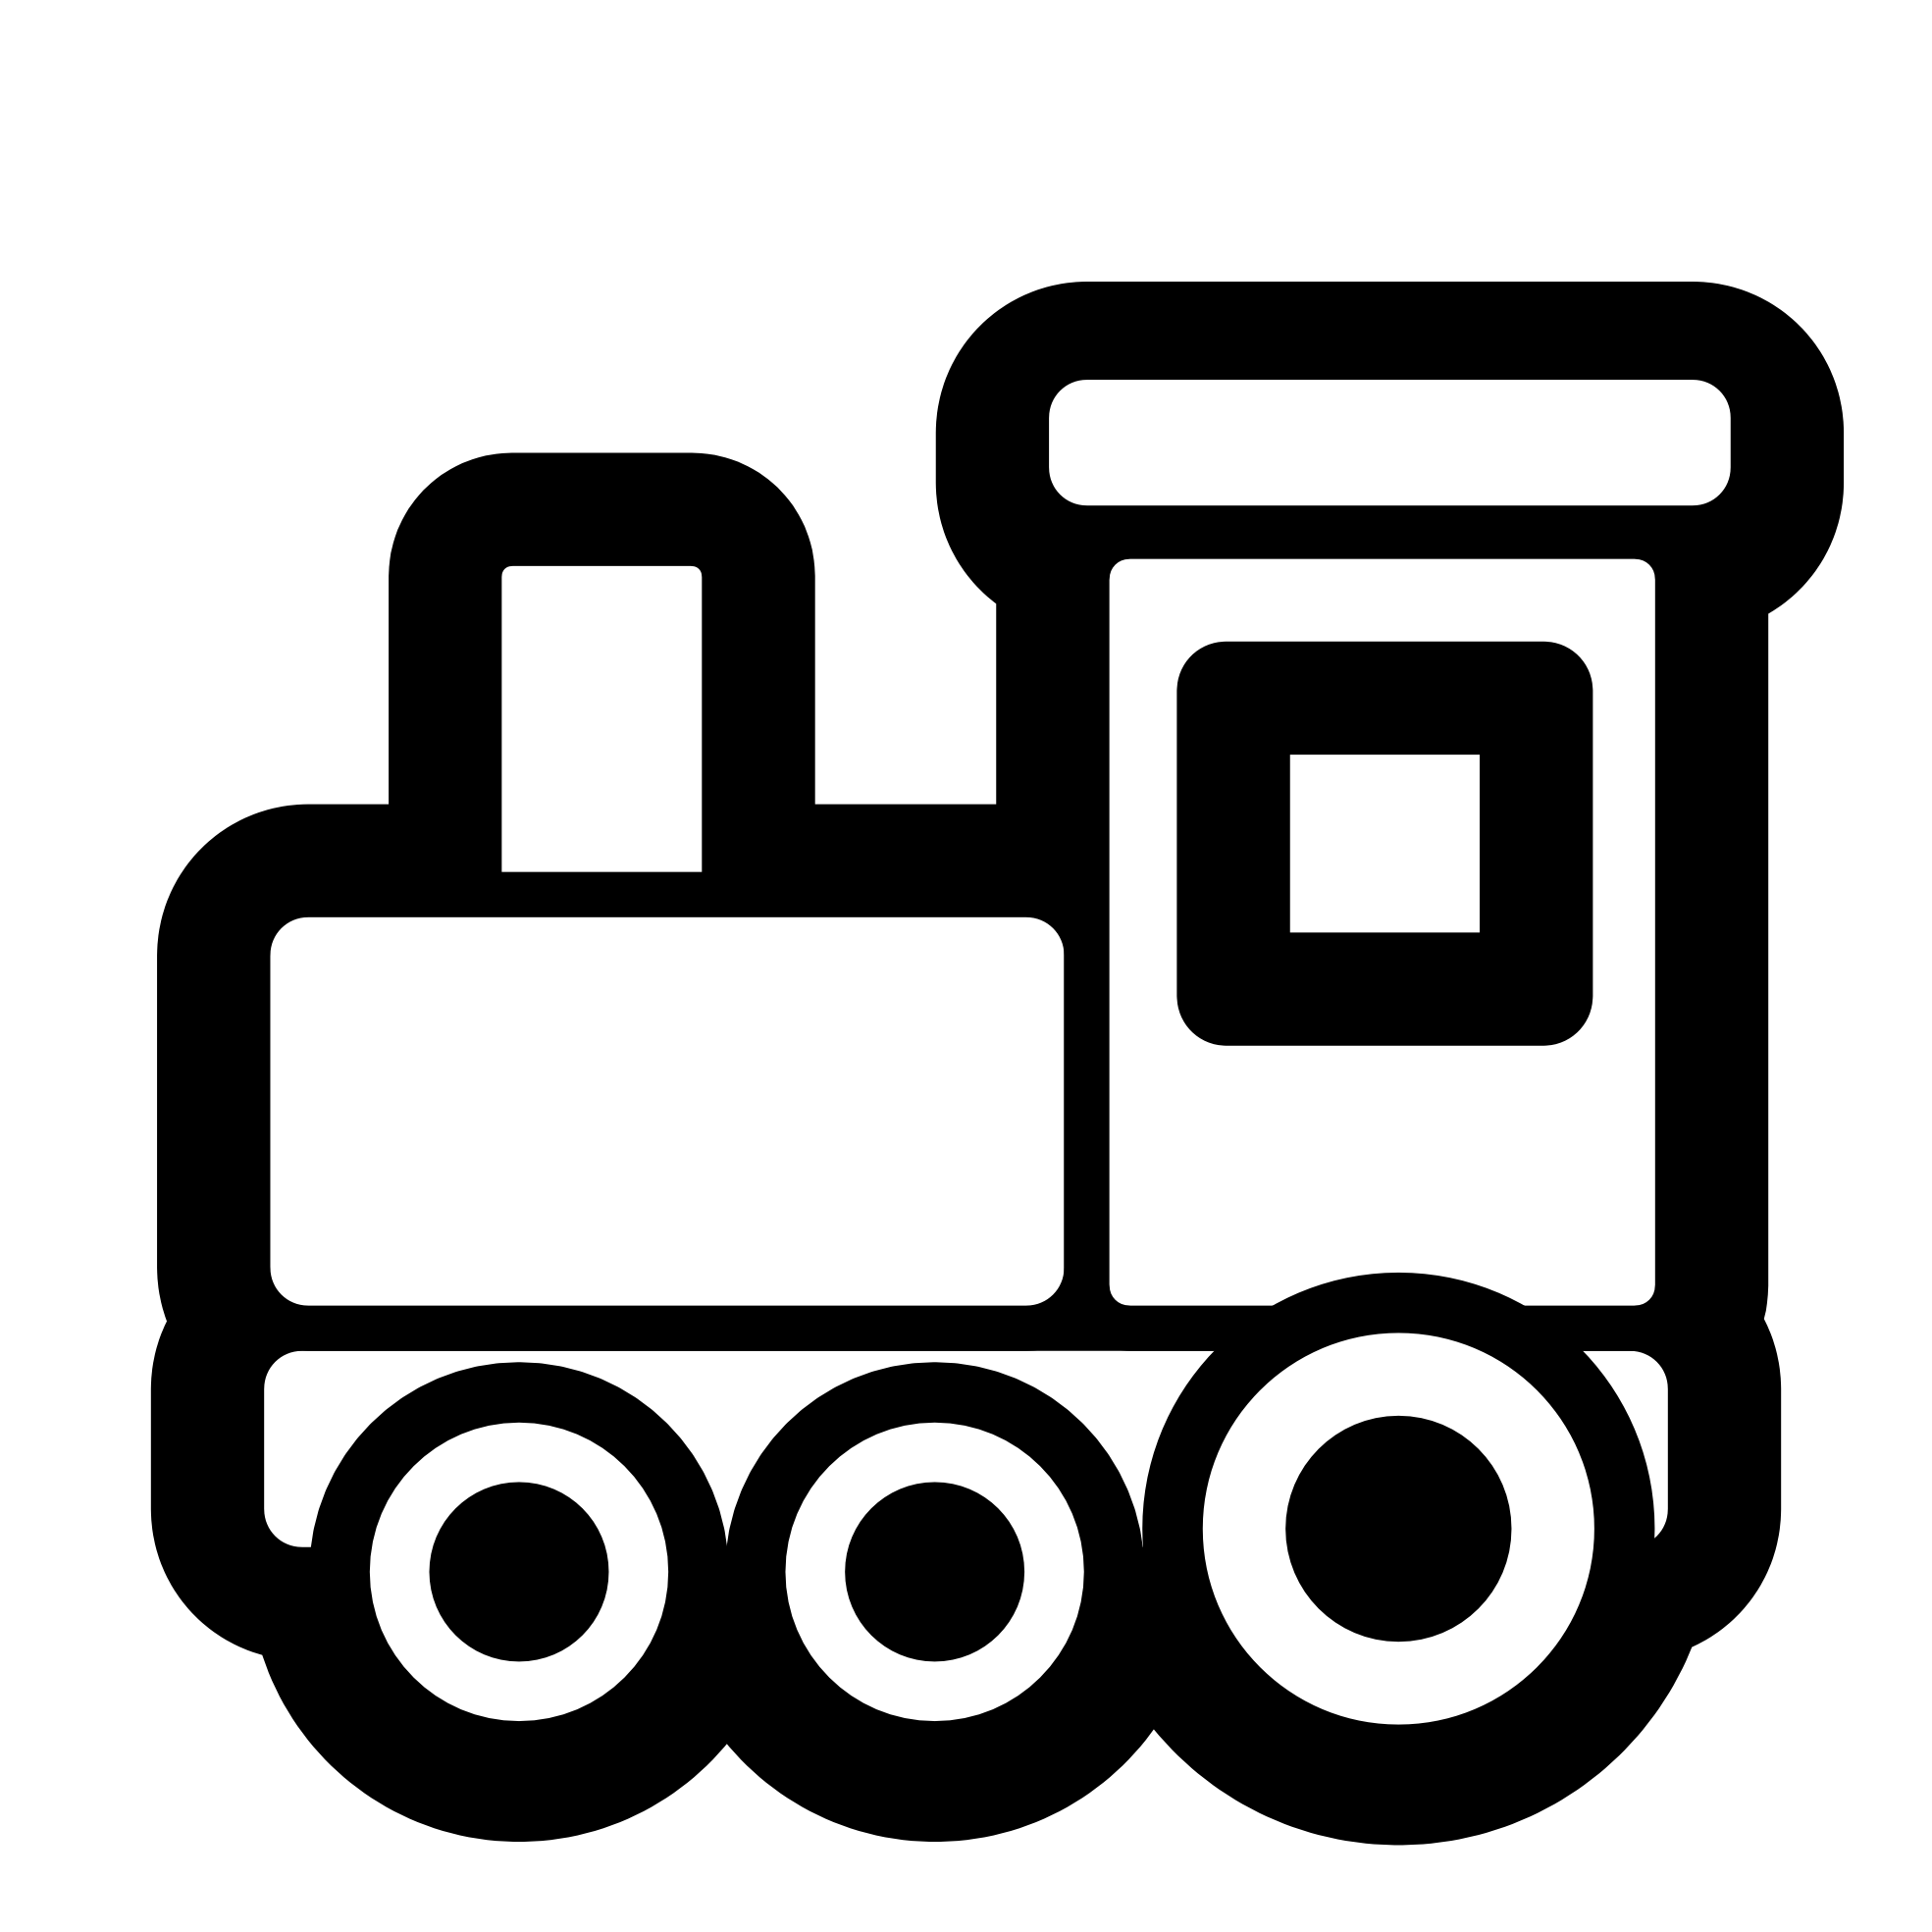 Silhouette at getdrawings com. Engine clipart train conductor